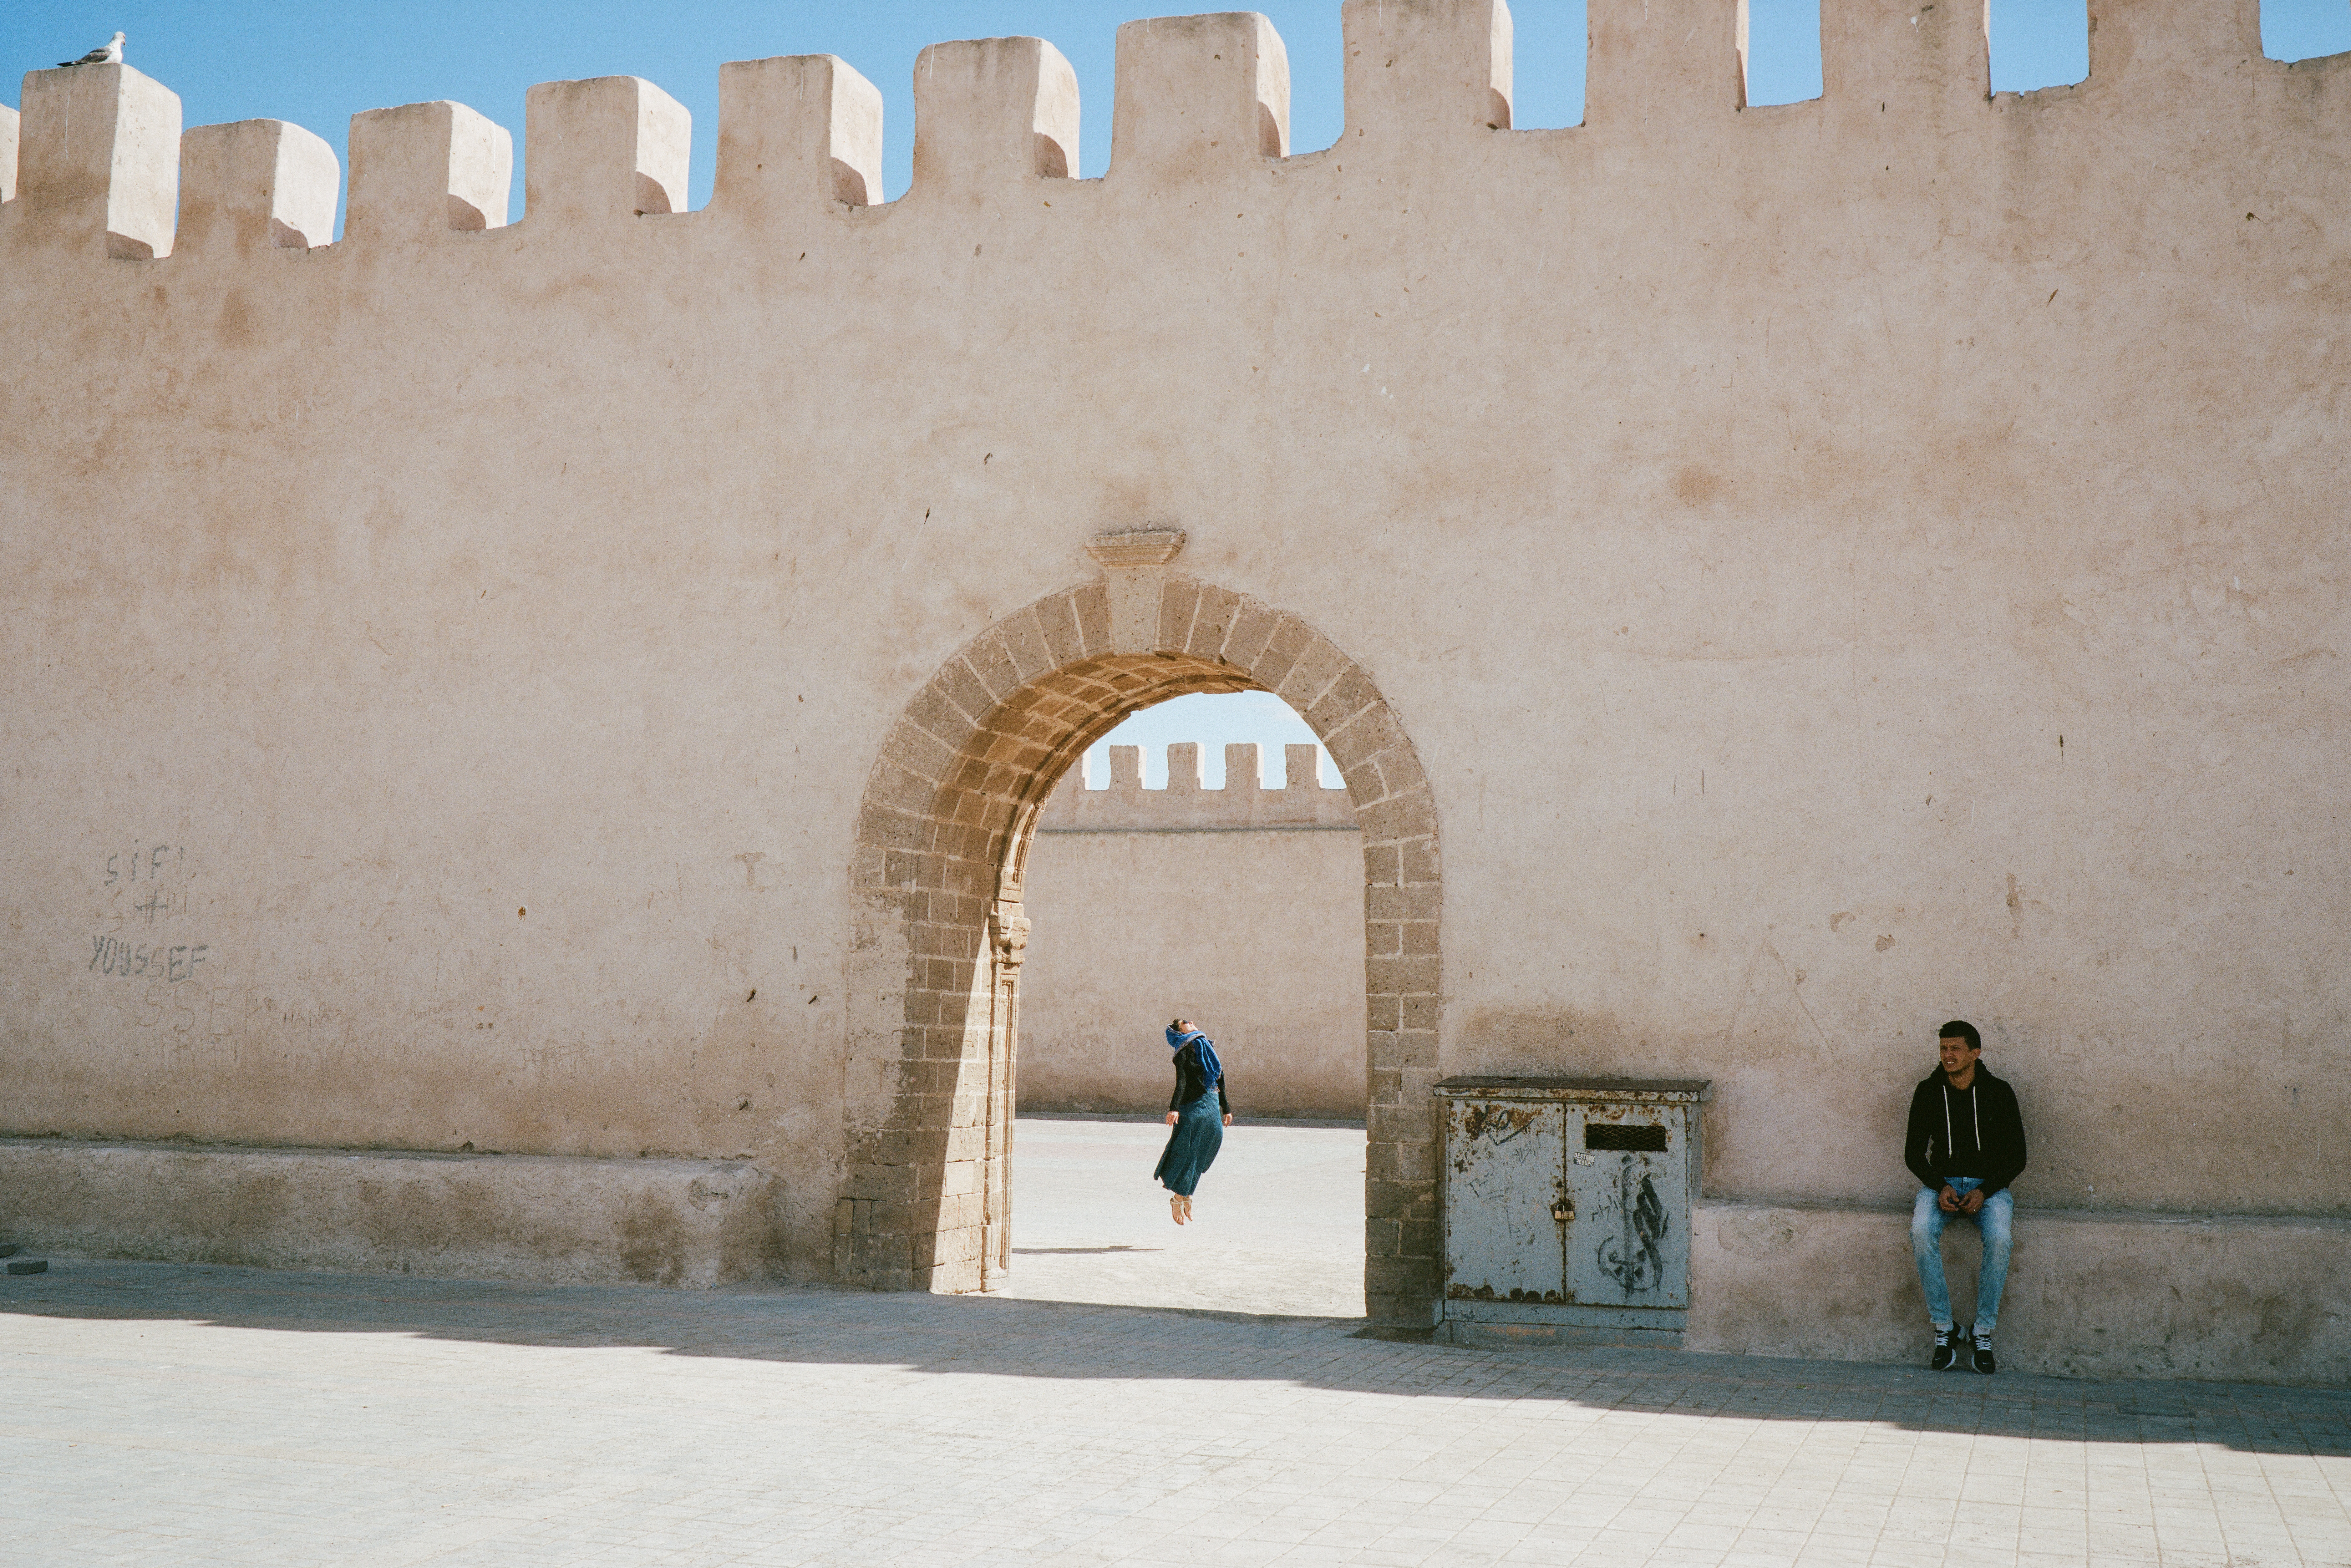 TWO DAYS IN MOROCCO